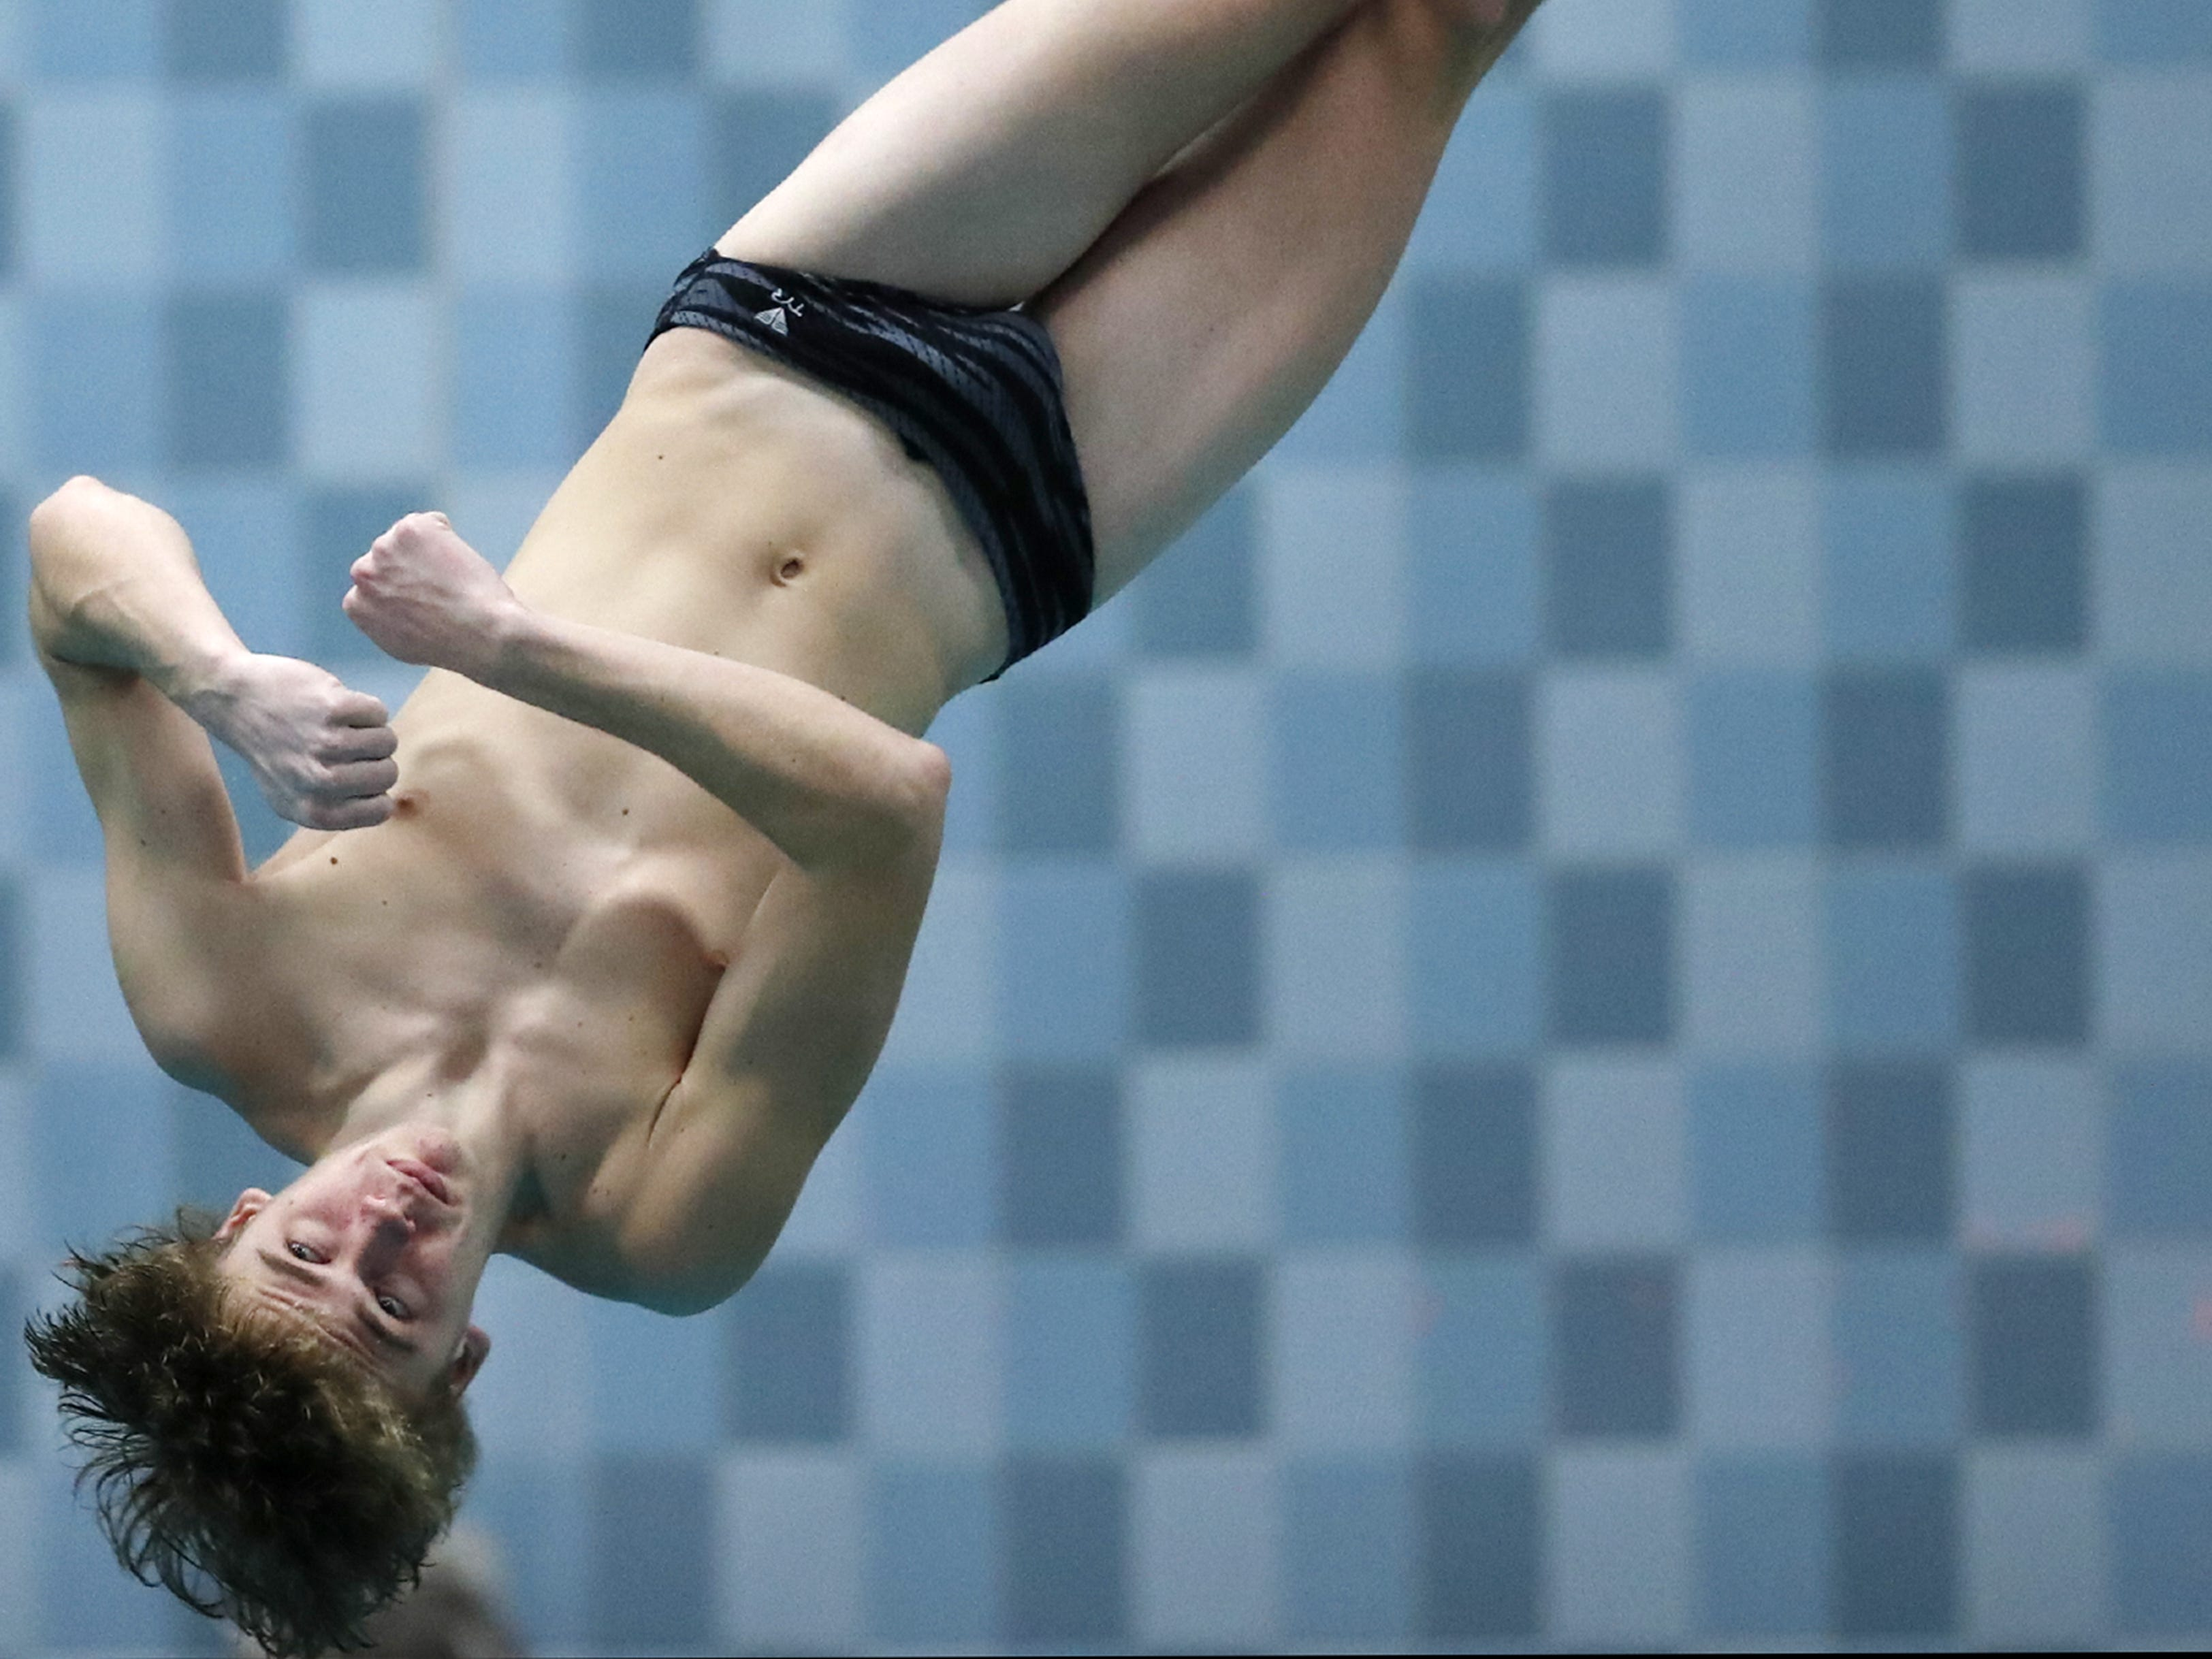 Appleton West/KimberlyÕs Nick O'Brien twists during a dive in the Division 1 2019 State Boys Swimming and Diving Championships Saturday, Feb. 16, 2019, at the UW Natatorium in Madison, Wis. Danny Damiani/USA TODAY NETWORK-Wisconsin